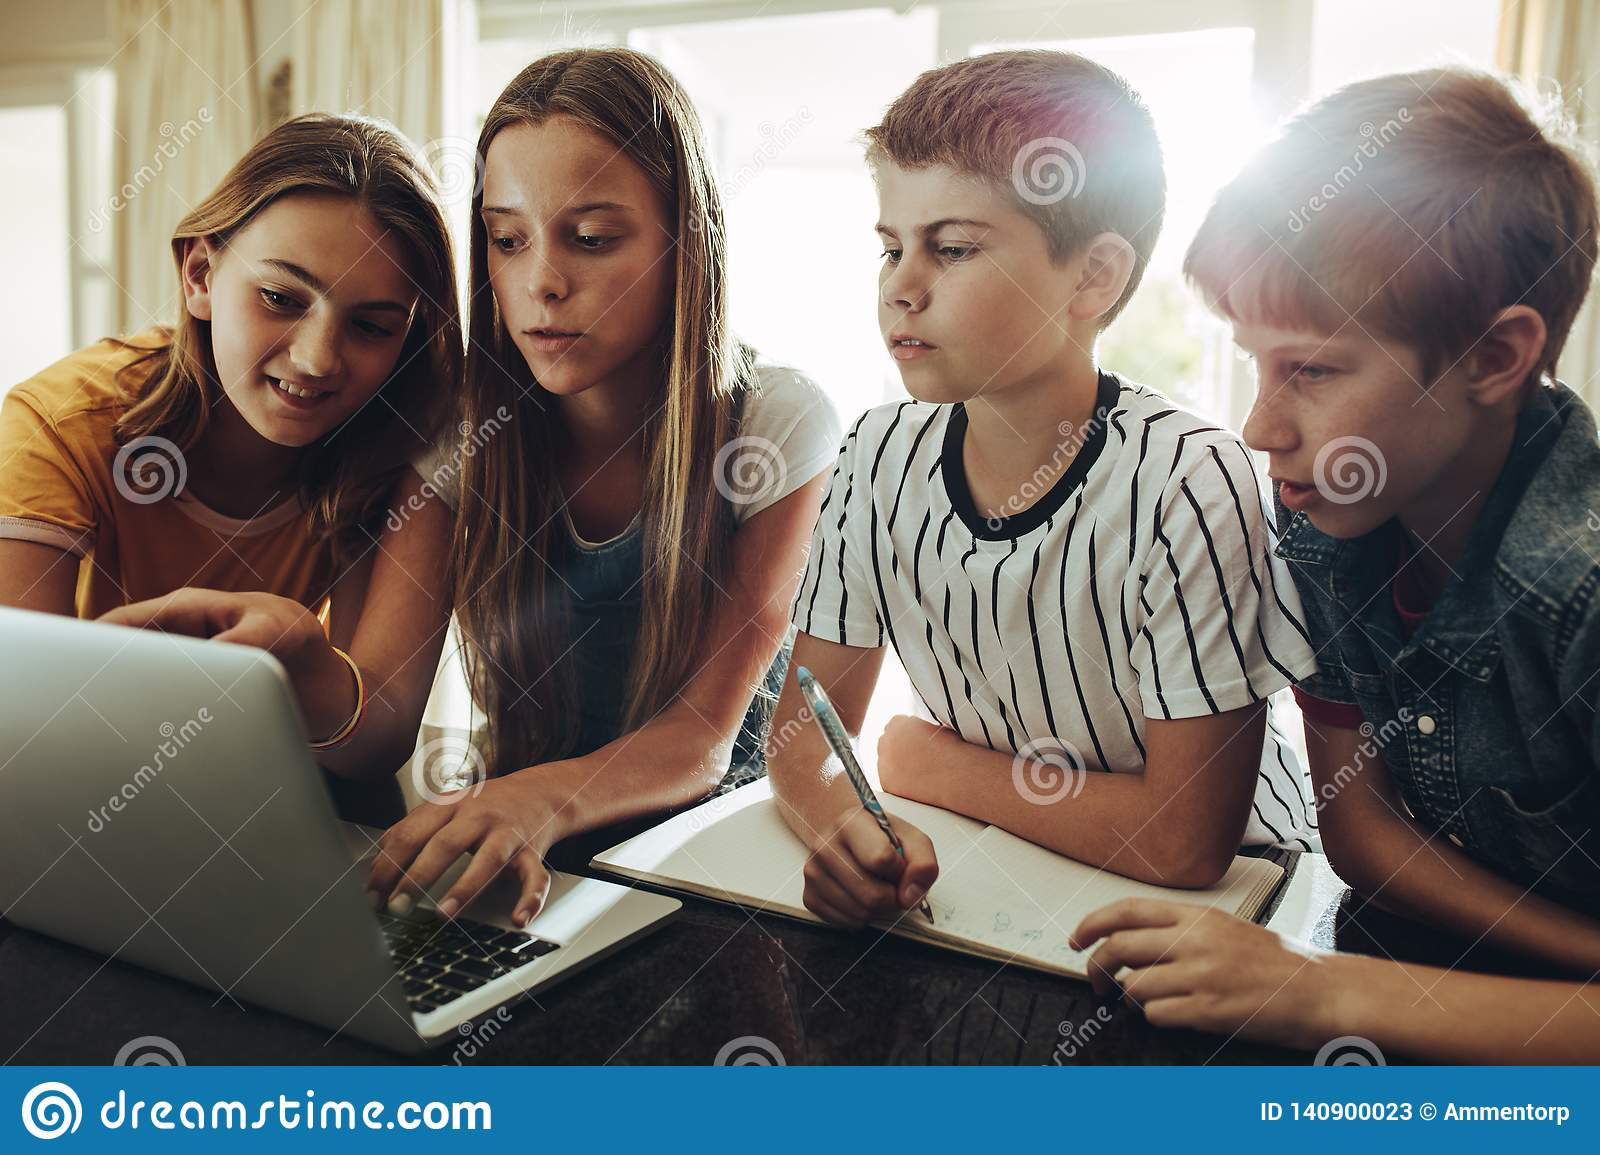 Computer is a great learning aid for students